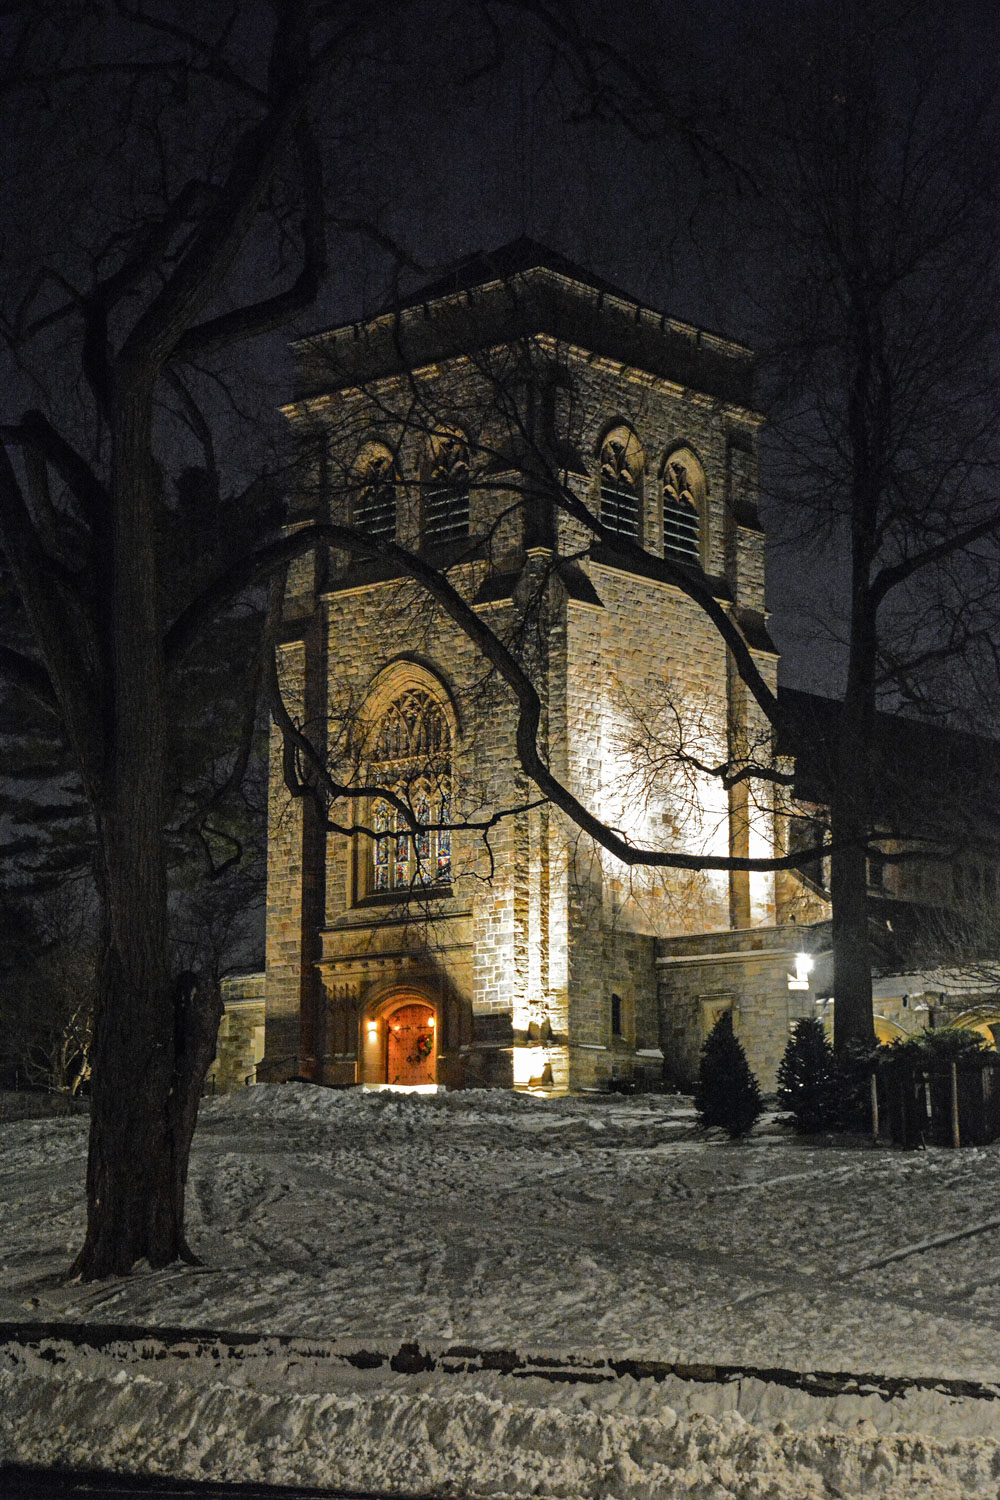 The Reformed Church of Bronxville